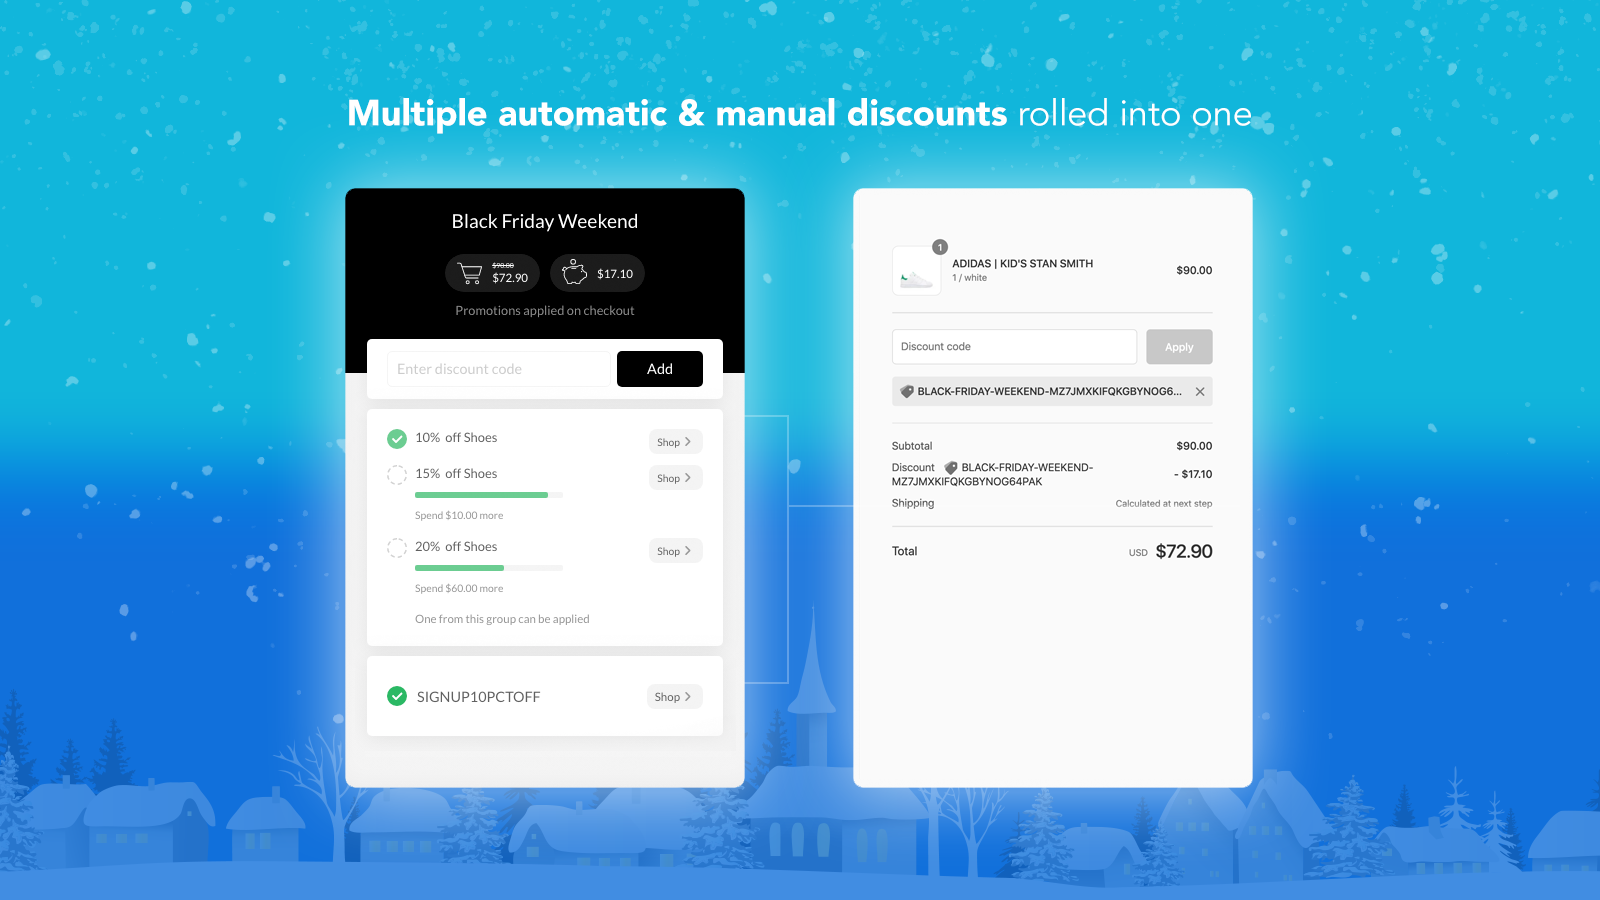 Multiple discounts automatically applied